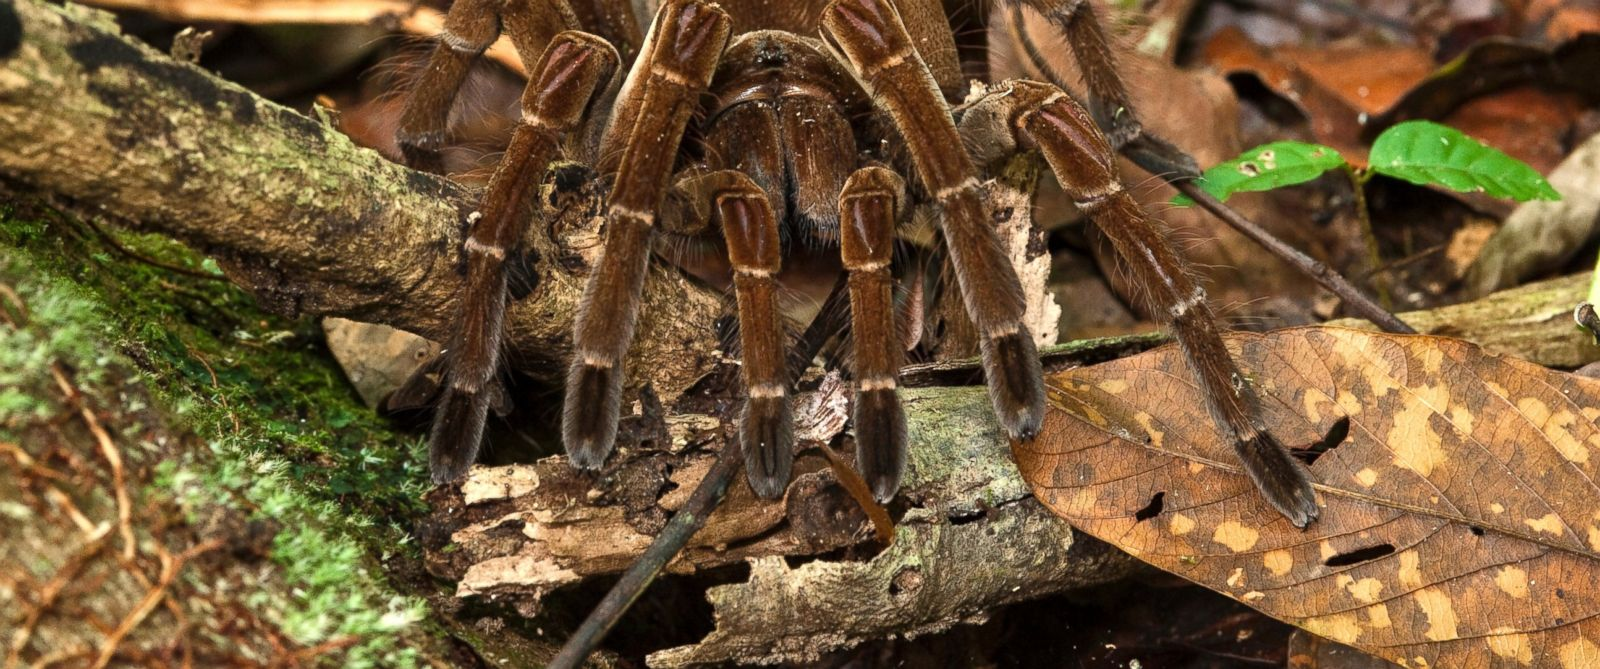 PHOTO: The South American Goliath birdeater has the body size of a fist and a leg span the size of a small child.